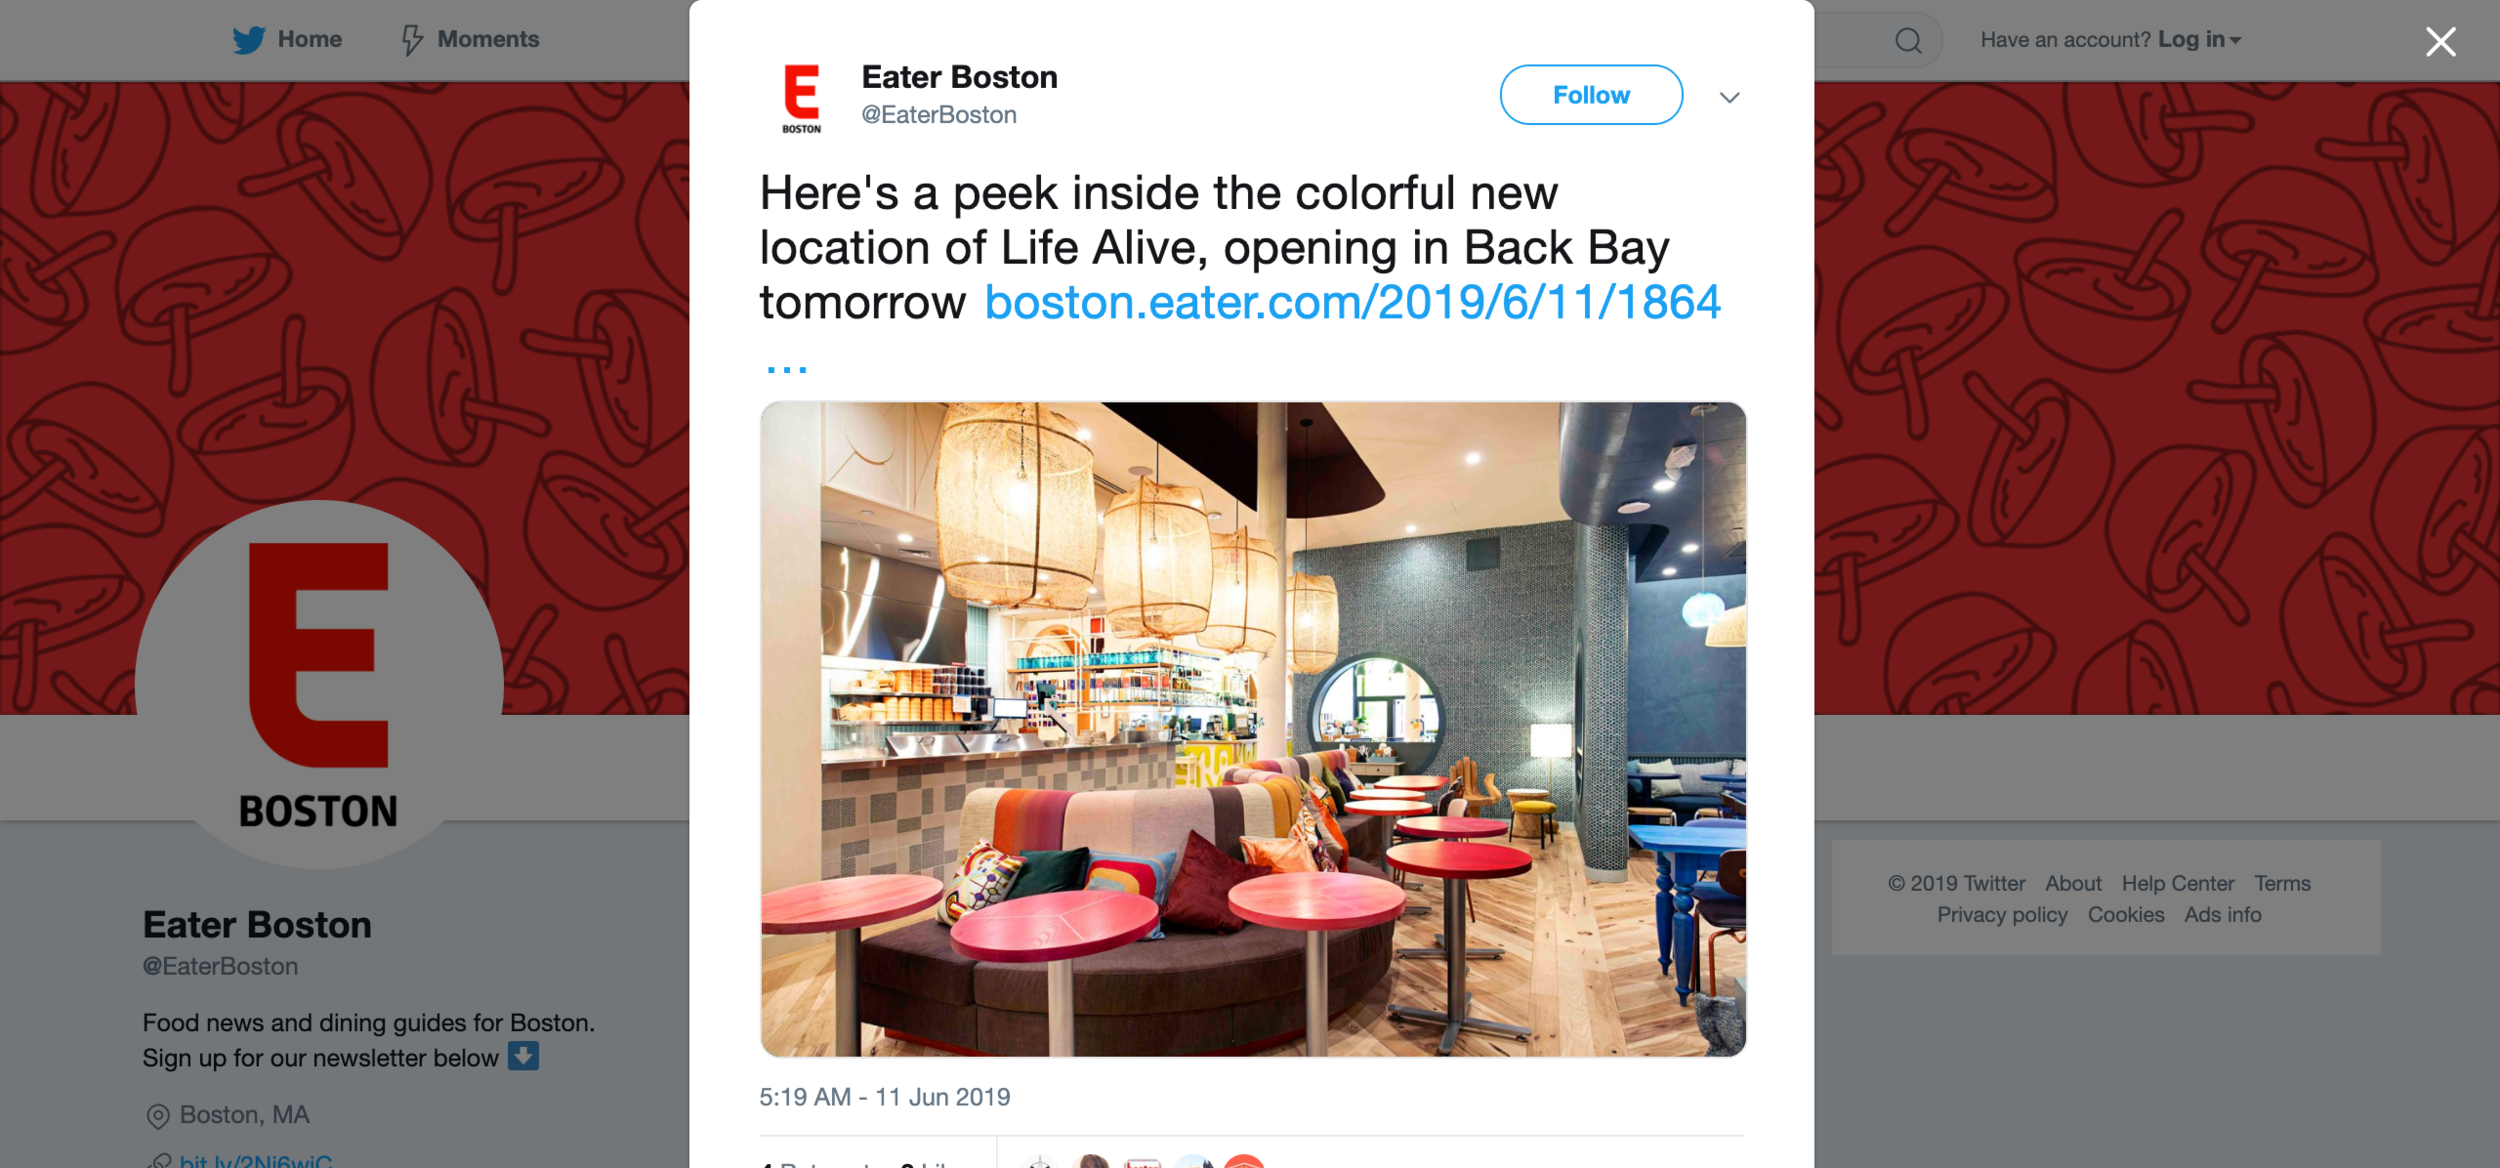 2019.06.11_Eater Boston, Twitter_Life Alive Back Bay.png